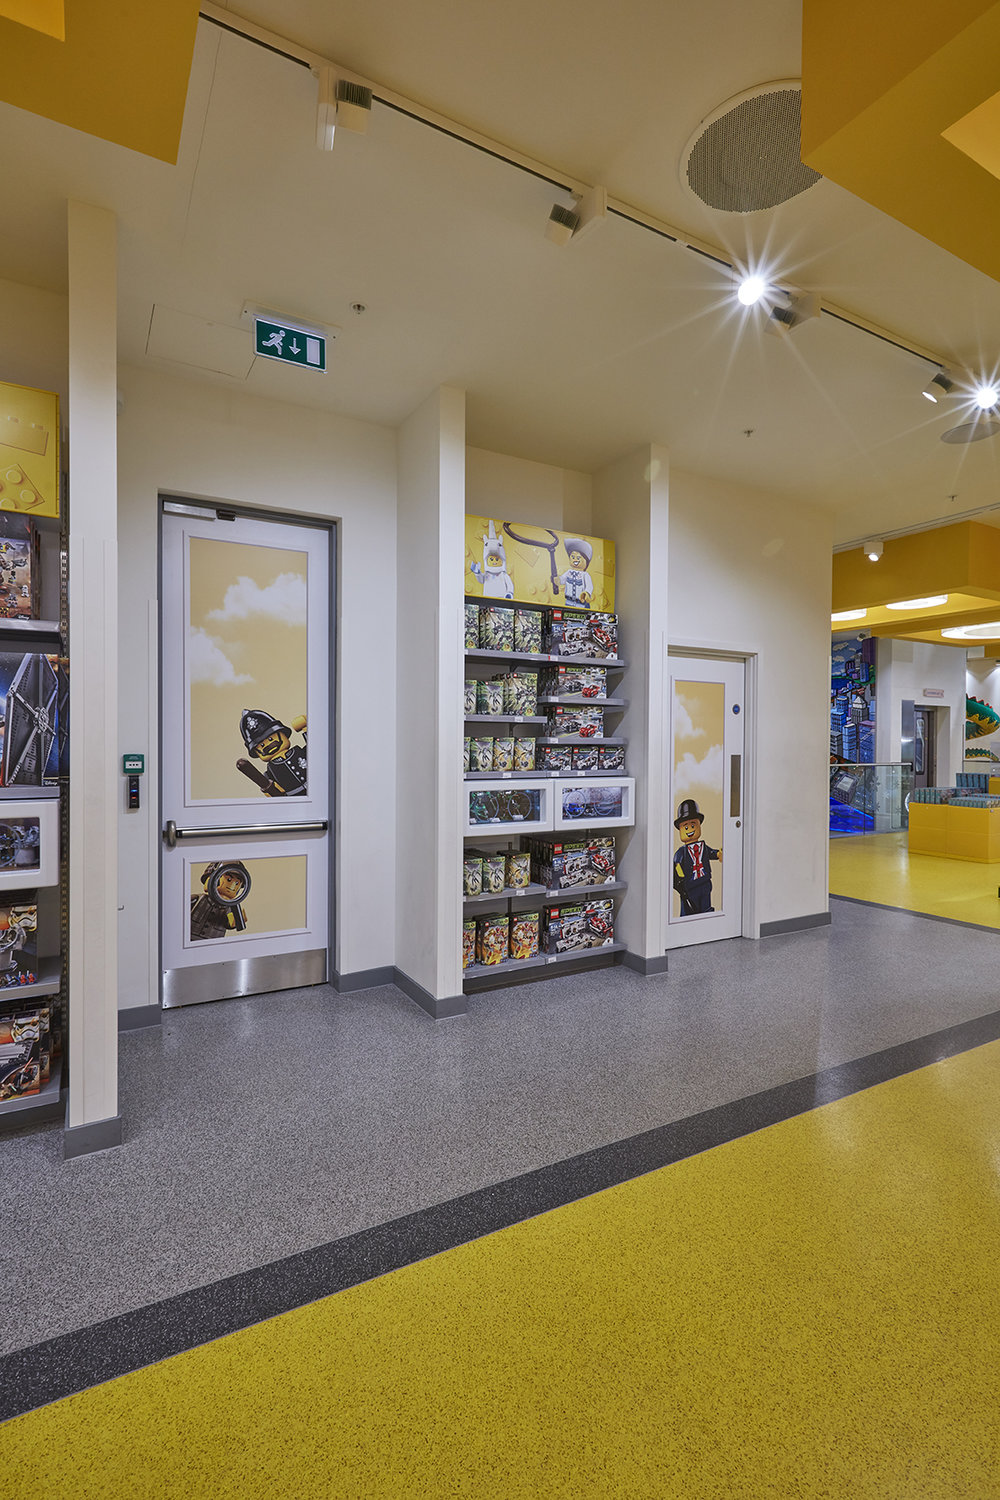 Instore Exit doors with LEGO vinyls over sections